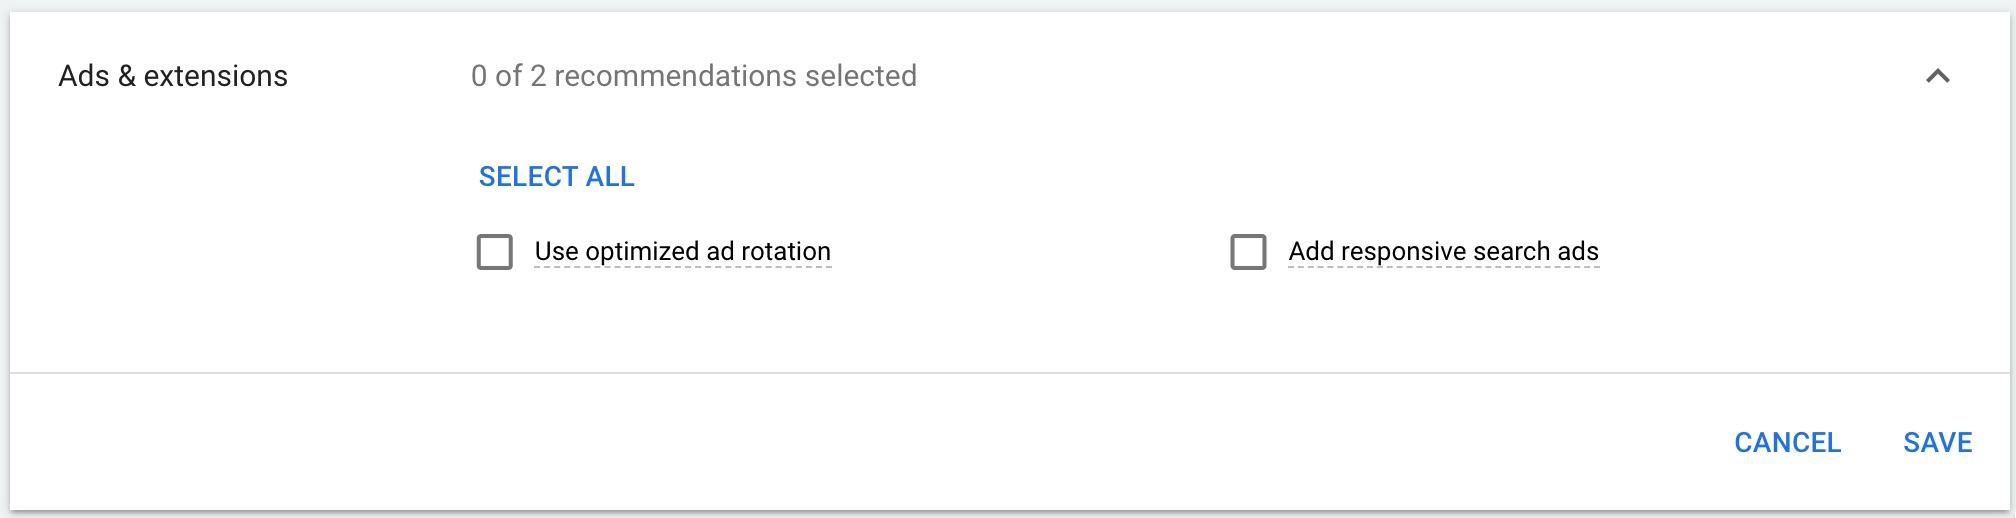 Google recommendations related to ads and extensions.